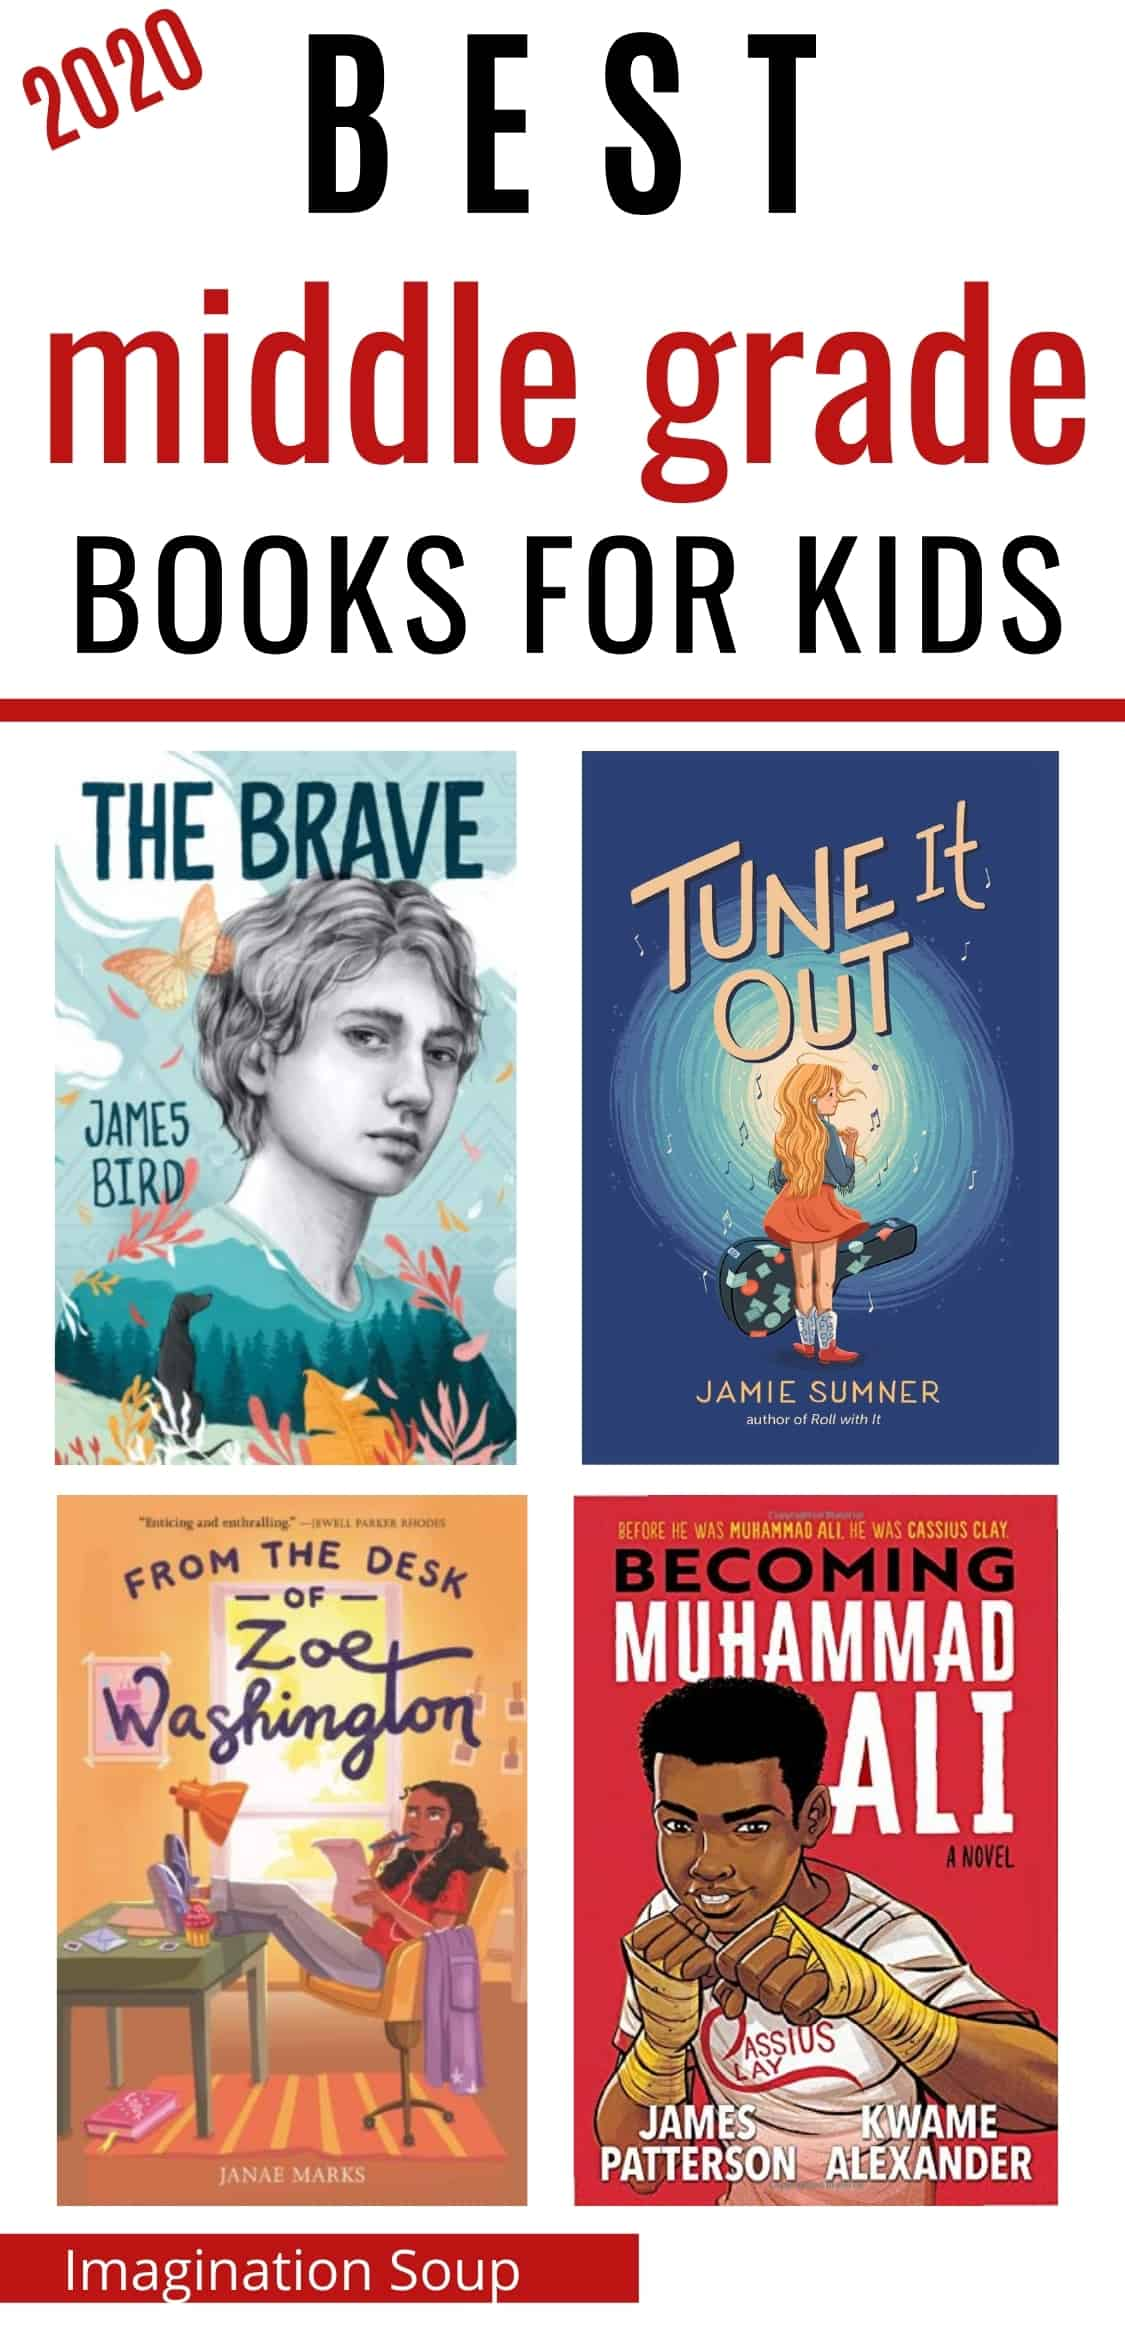 the best middle grade books for kids (2020)